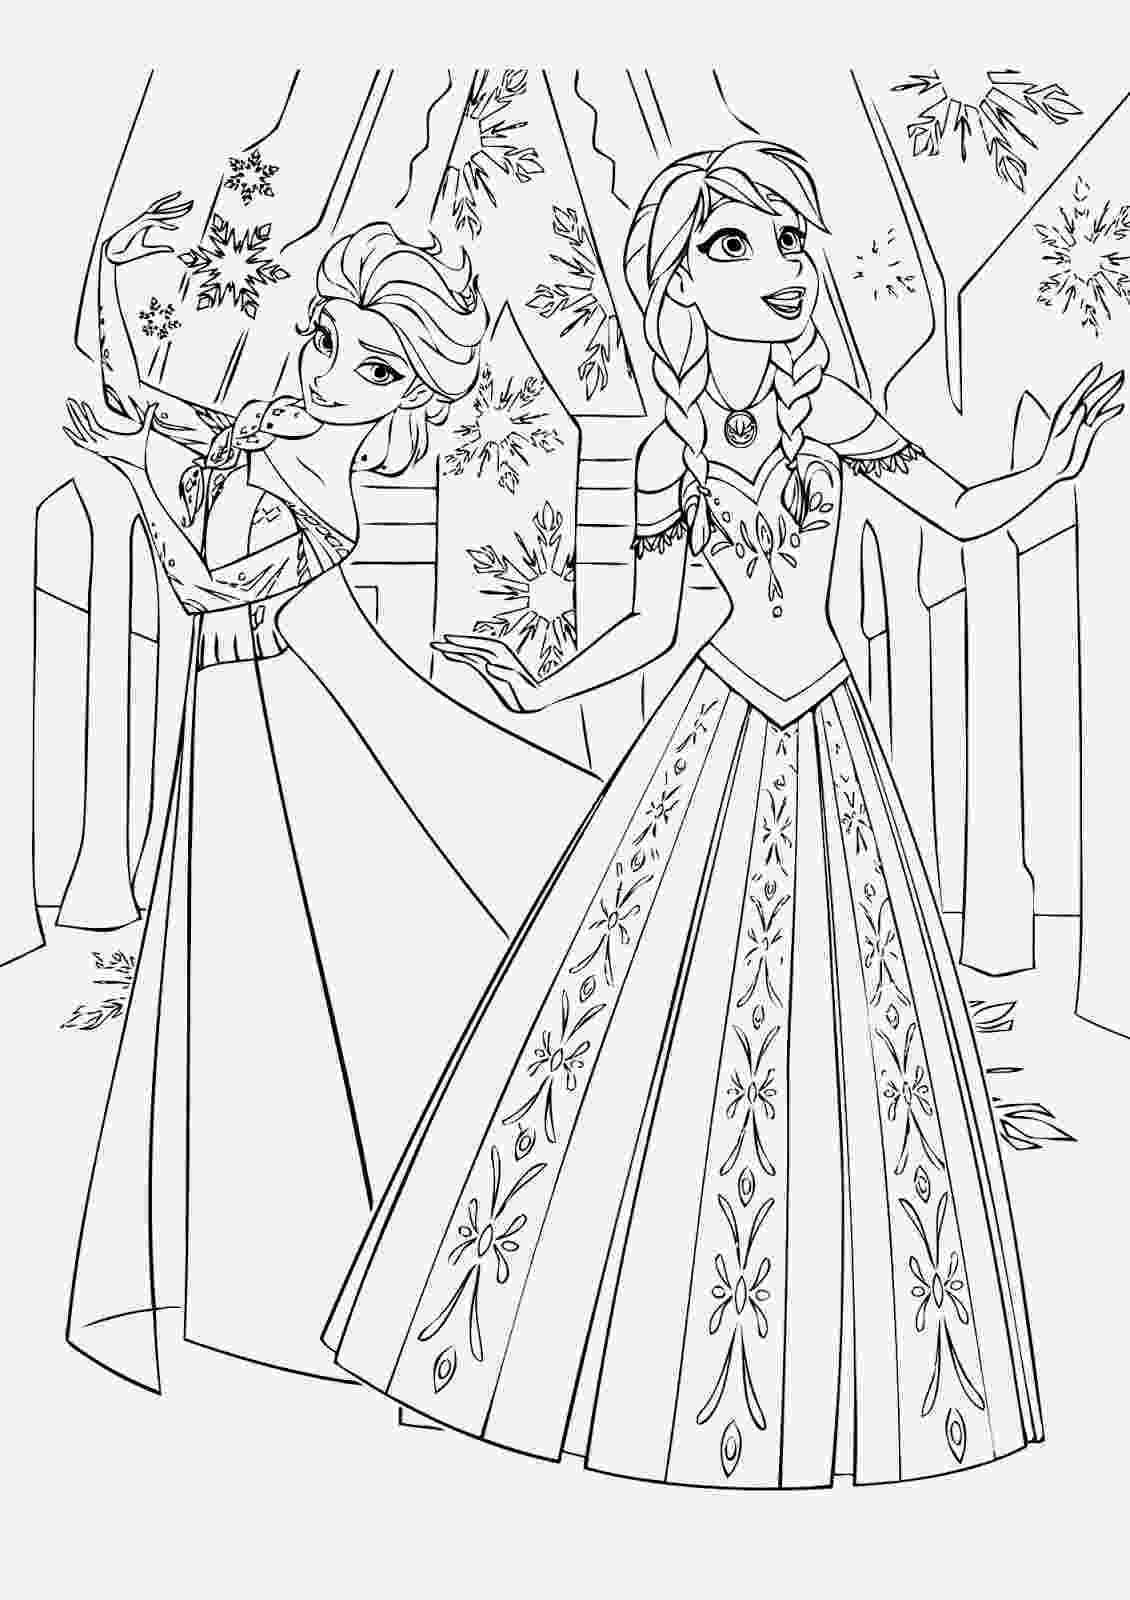 frozen printable colouring pages frozen coloring pages animated film characters elsa printable frozen colouring pages